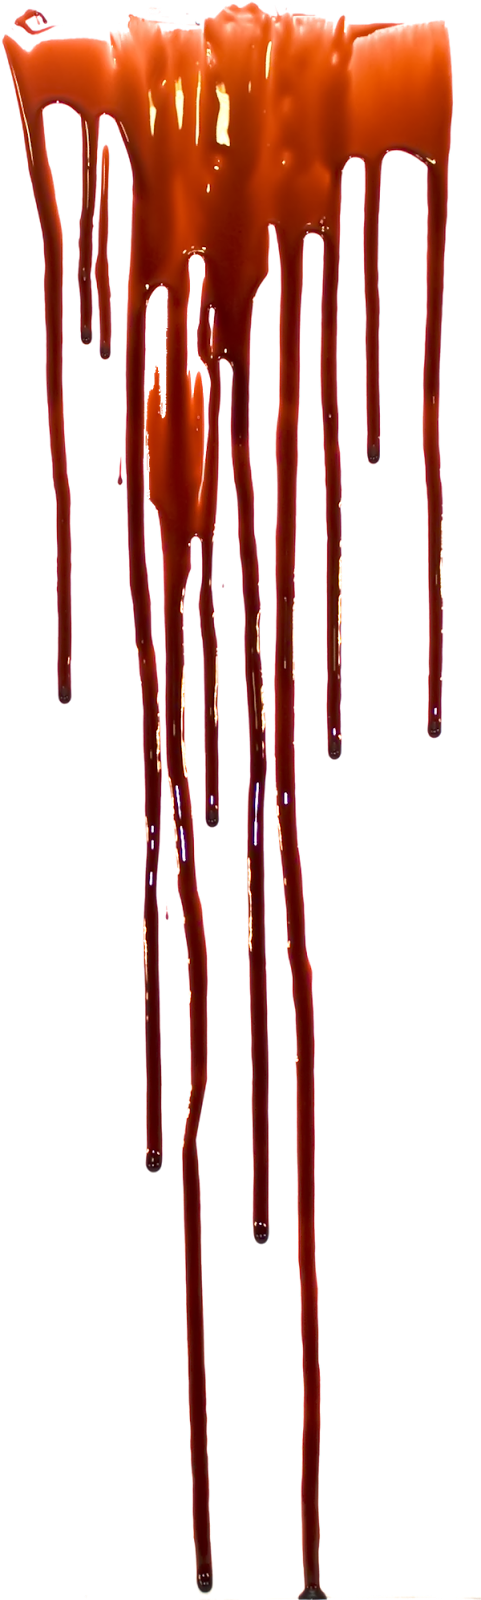 Download Dripping Blood Png - HD Transparent PNG - NicePNG.com